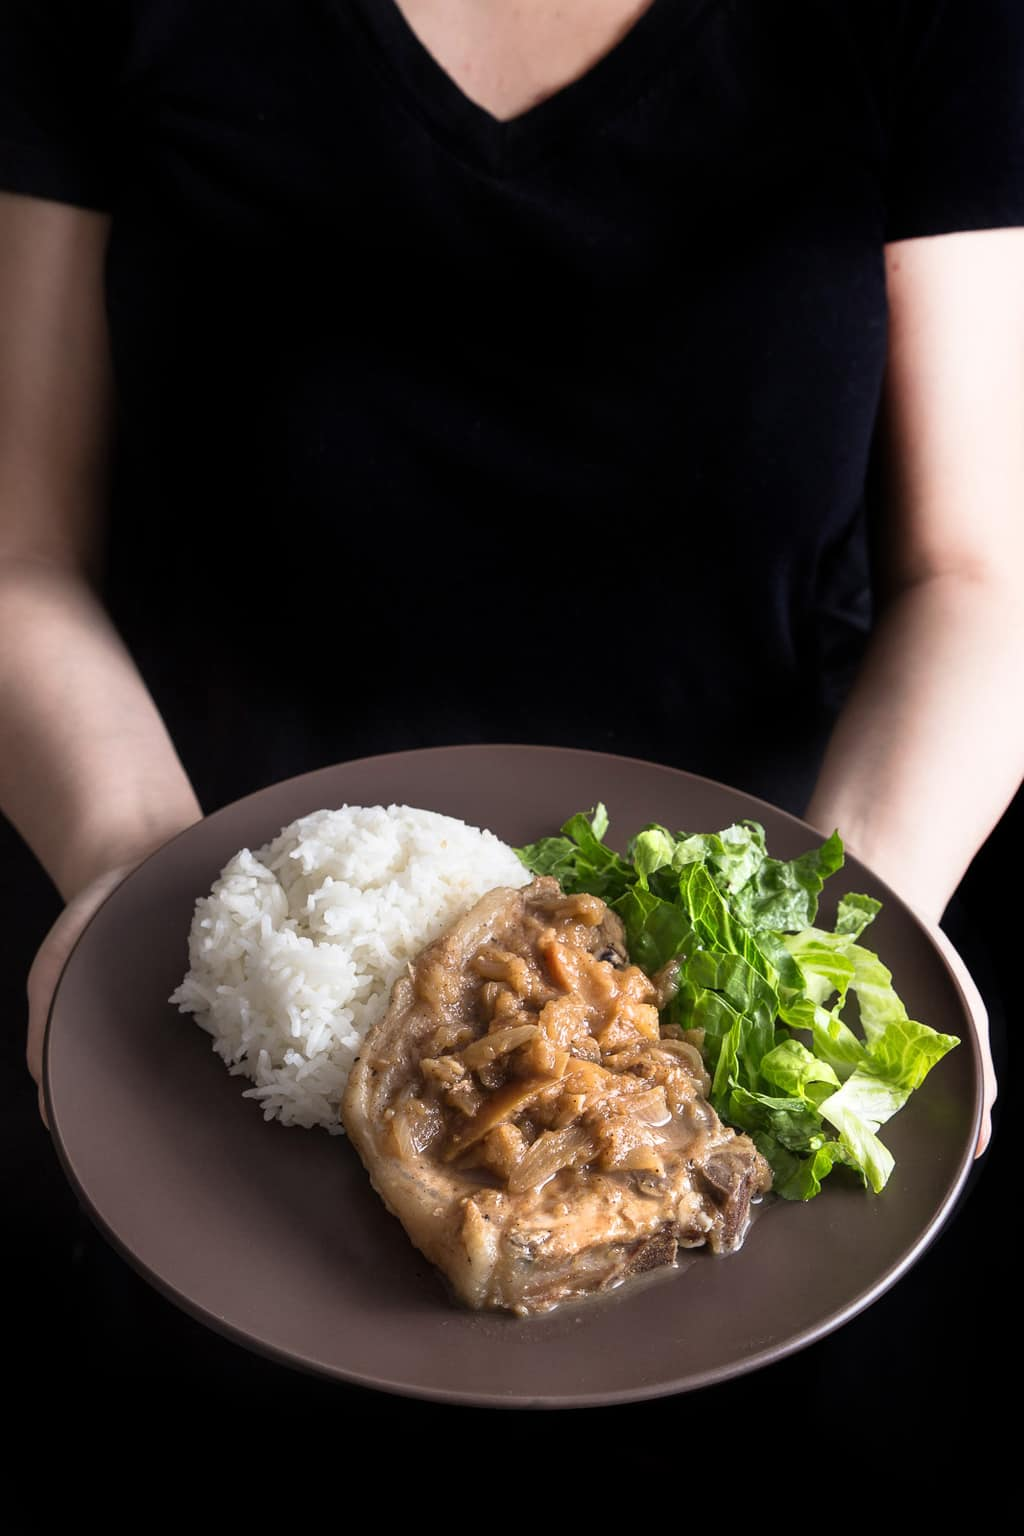 Pork Chops and Applesauce made in a pressure cooker! PLUS more great Electric Pressure Cooker Recipes!